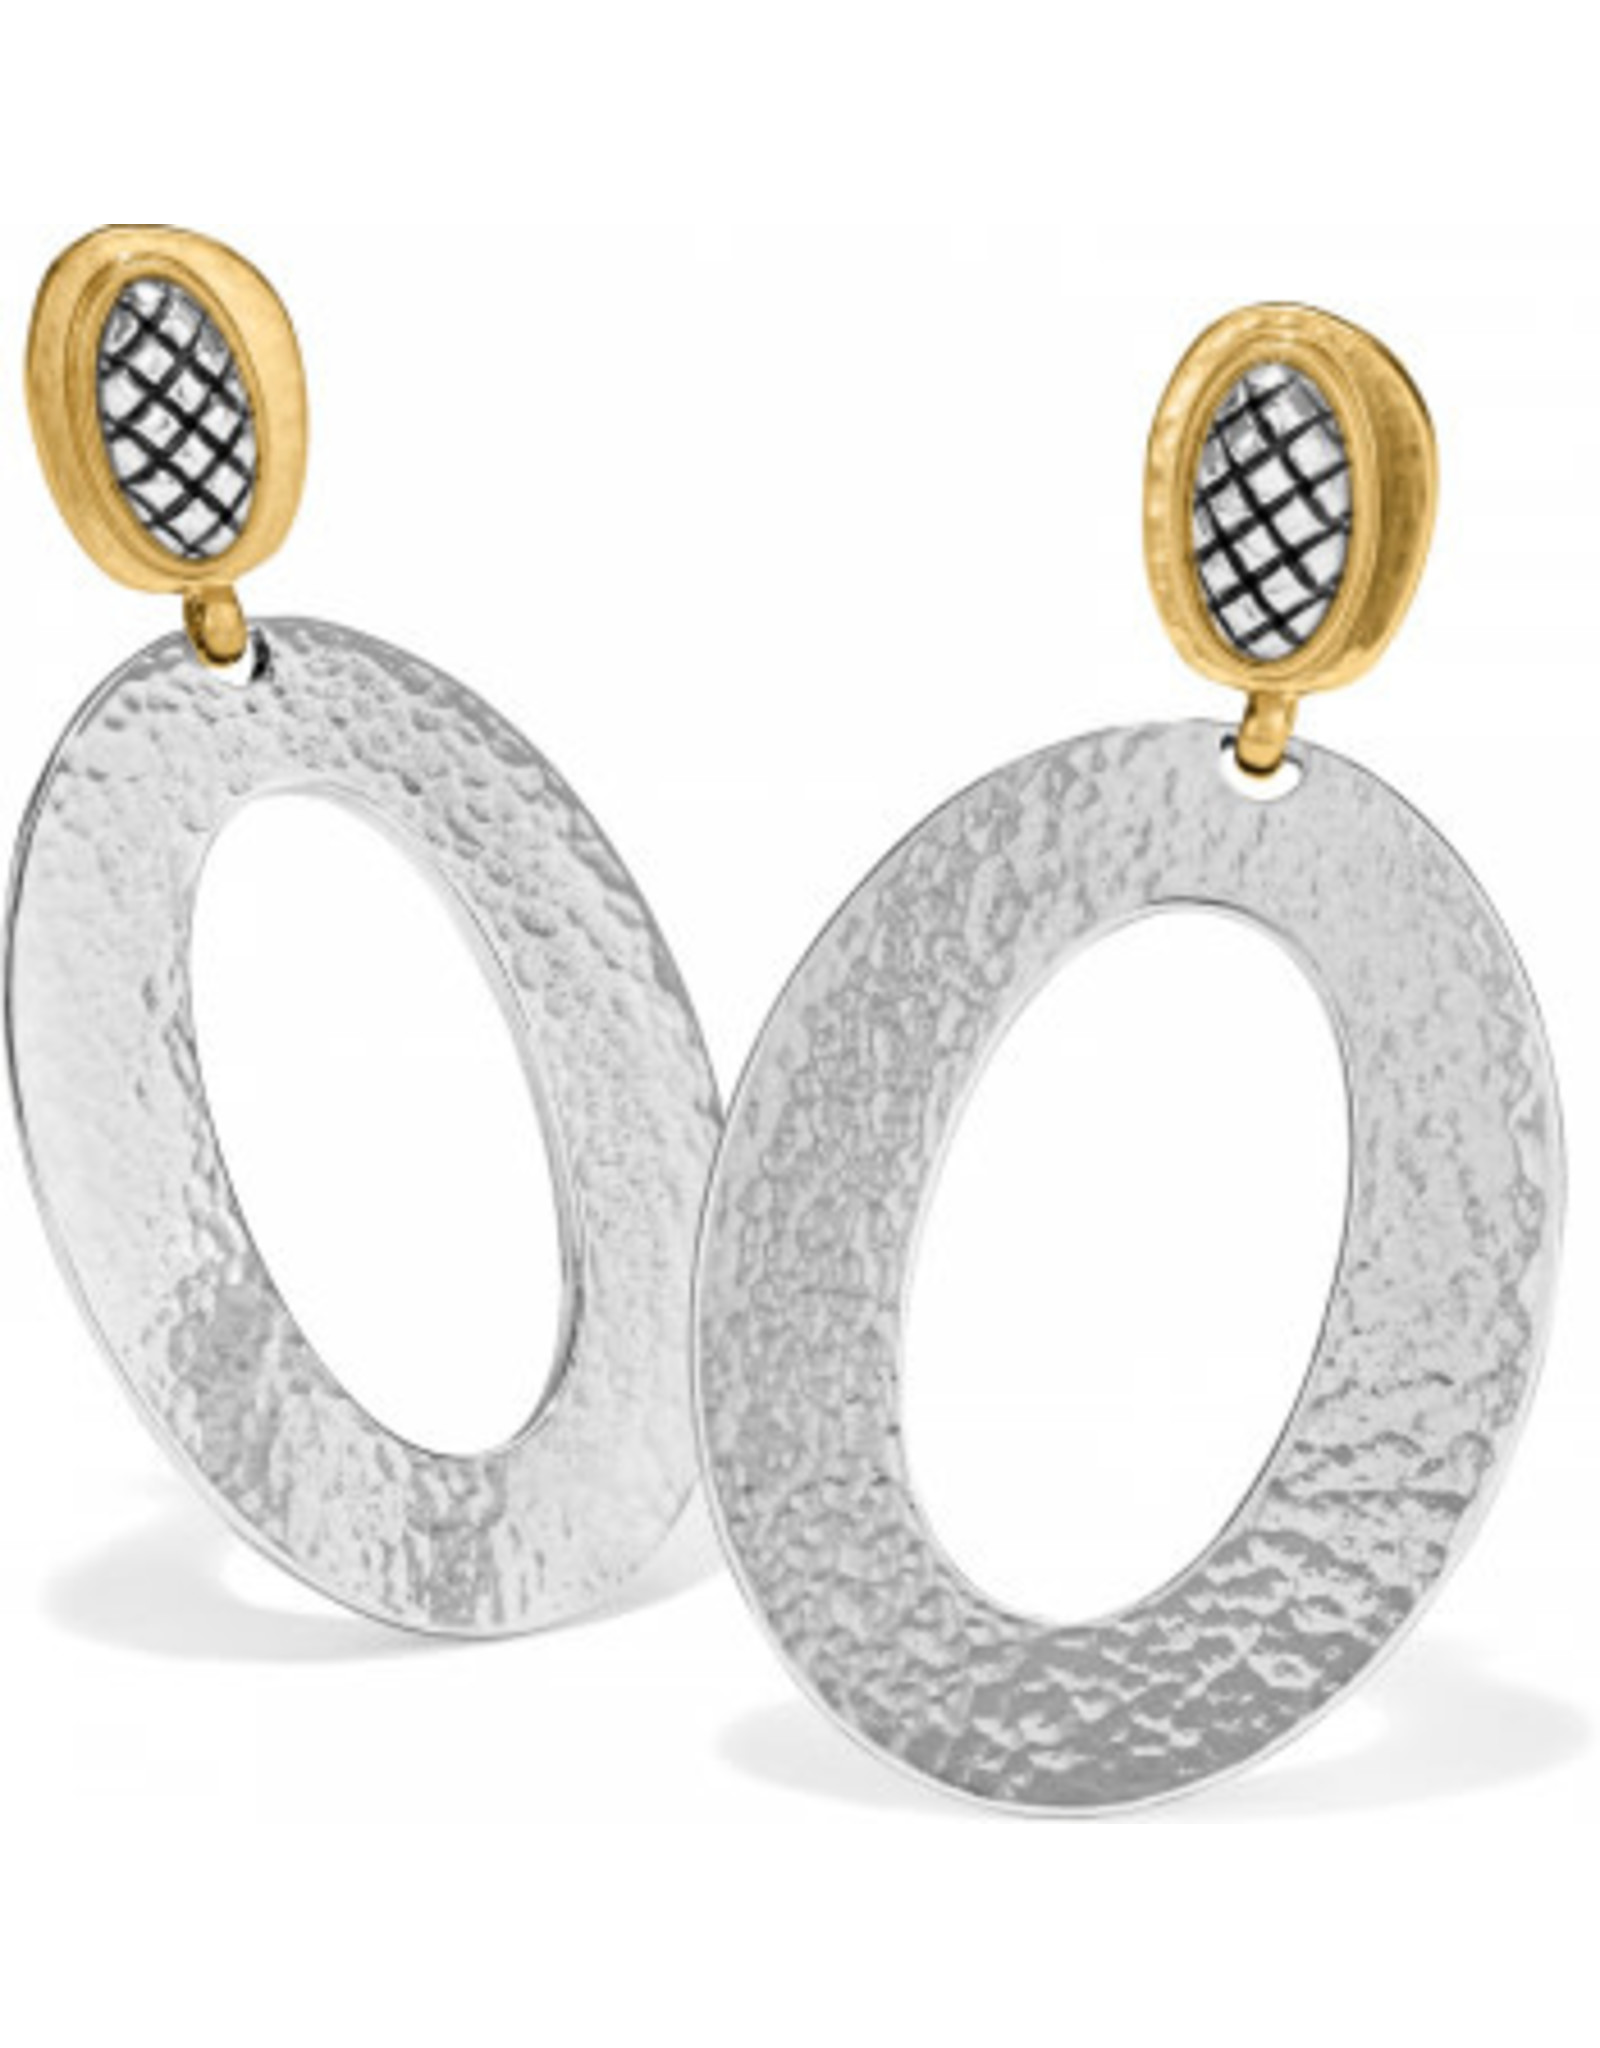 Brighton Ferrara Artisan Two Tone Drop Earrings